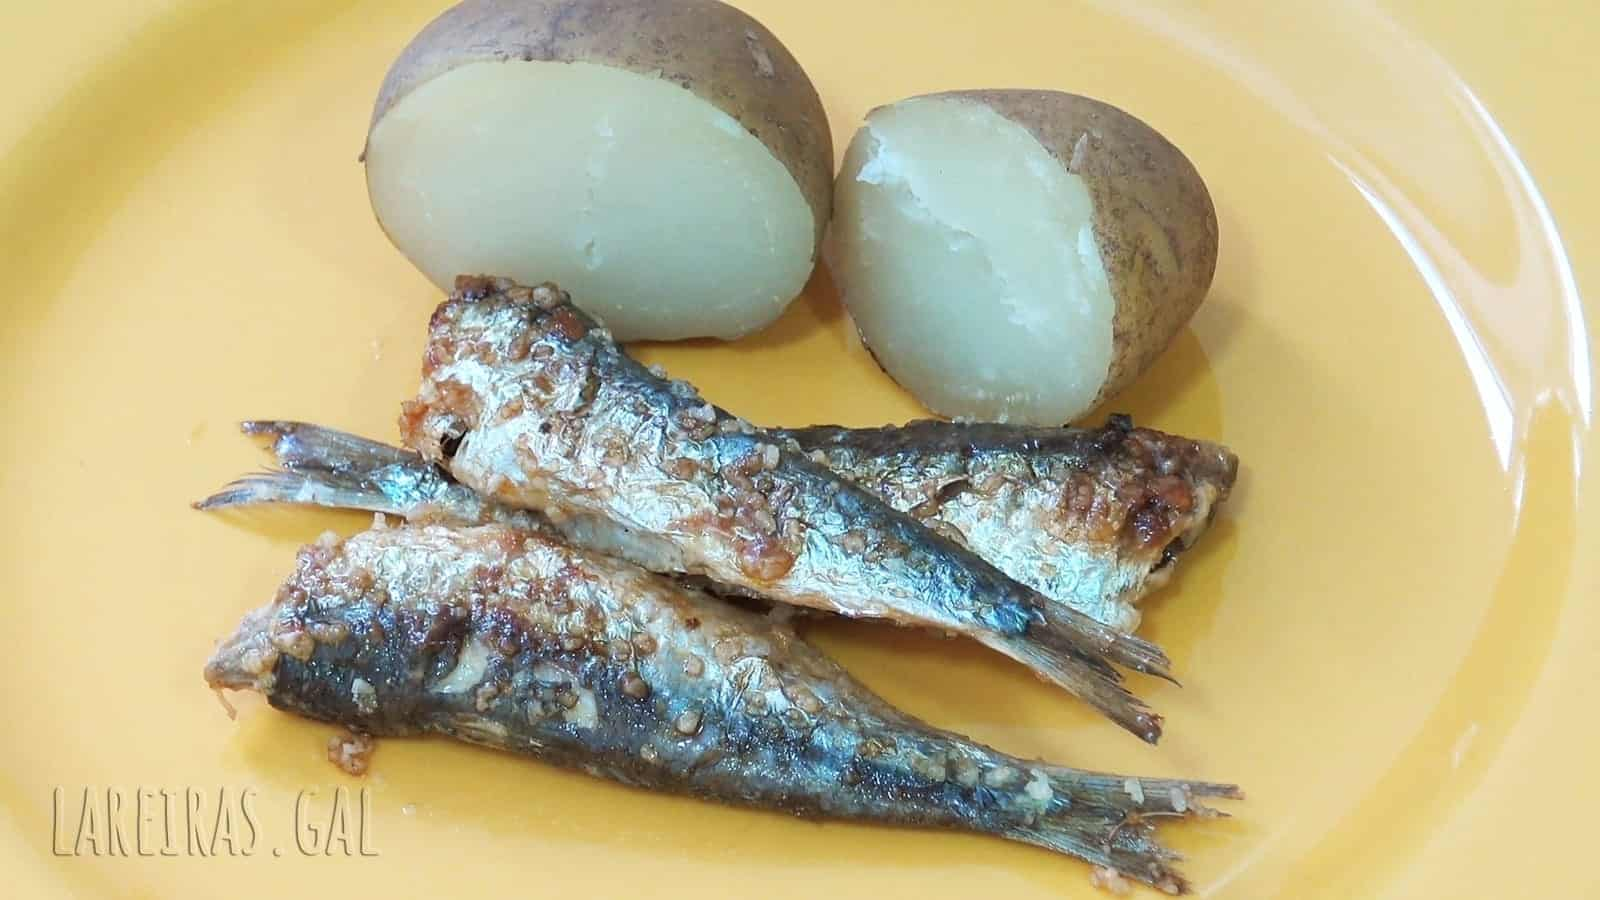 Xoubas (small sardines) with cachelos